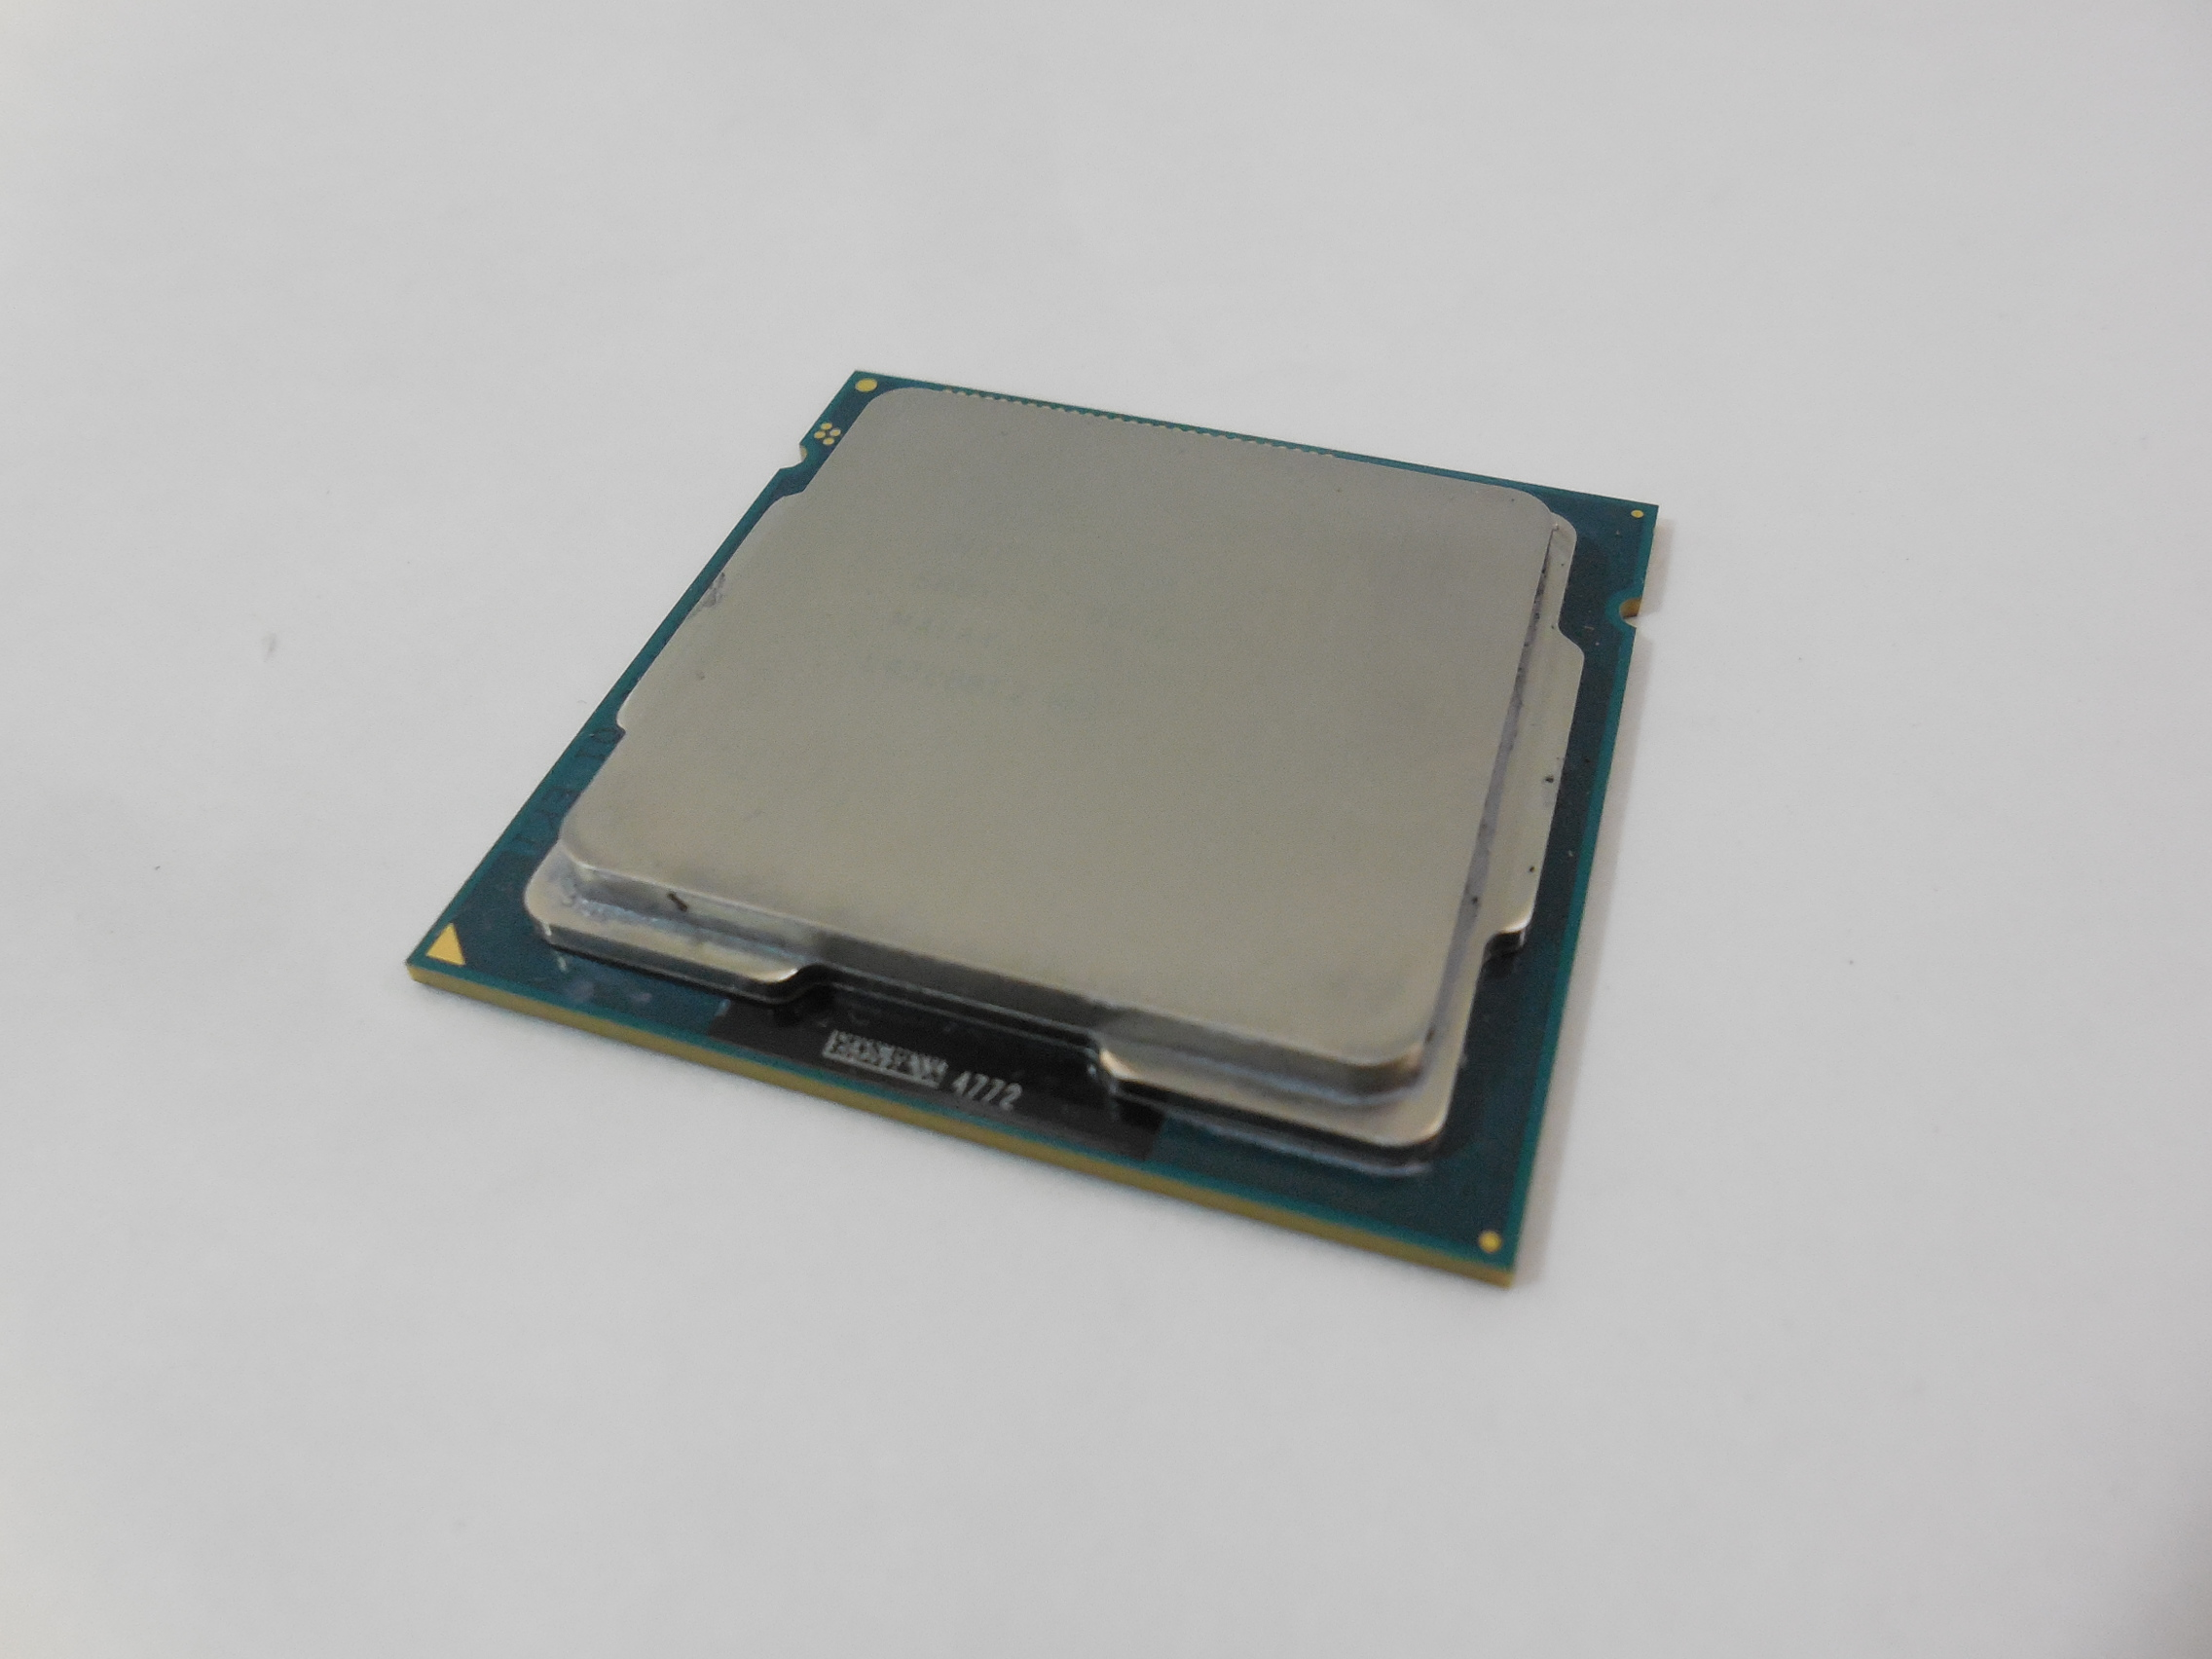 Процессор 4-ядра Socket 1155 Intel Core i5-3340 - Pic n 278444